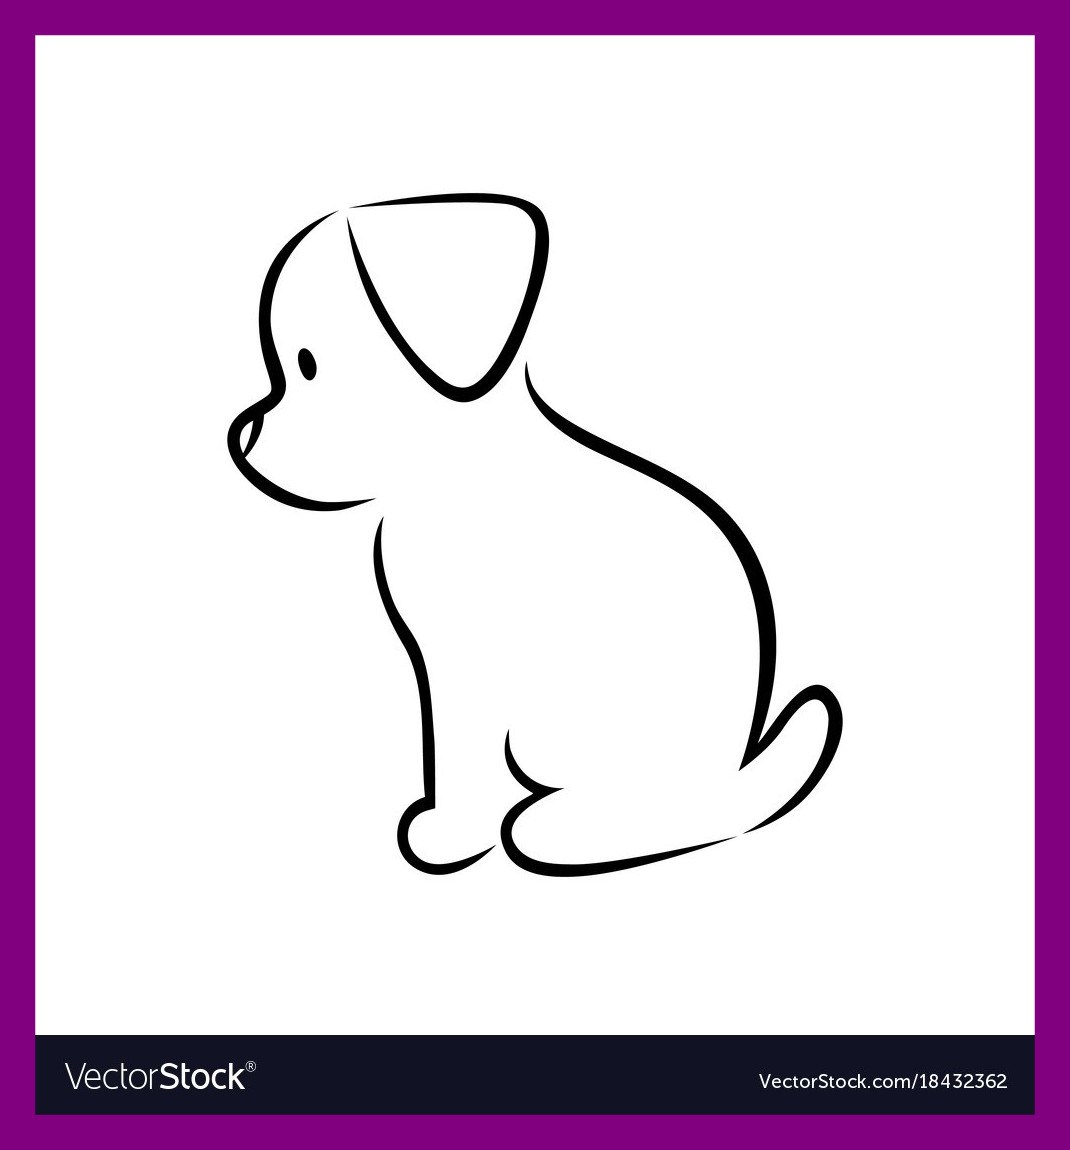 1070x1150 Inspiring Cute Puppy Silhouette On White Royalty Vector Image Pics